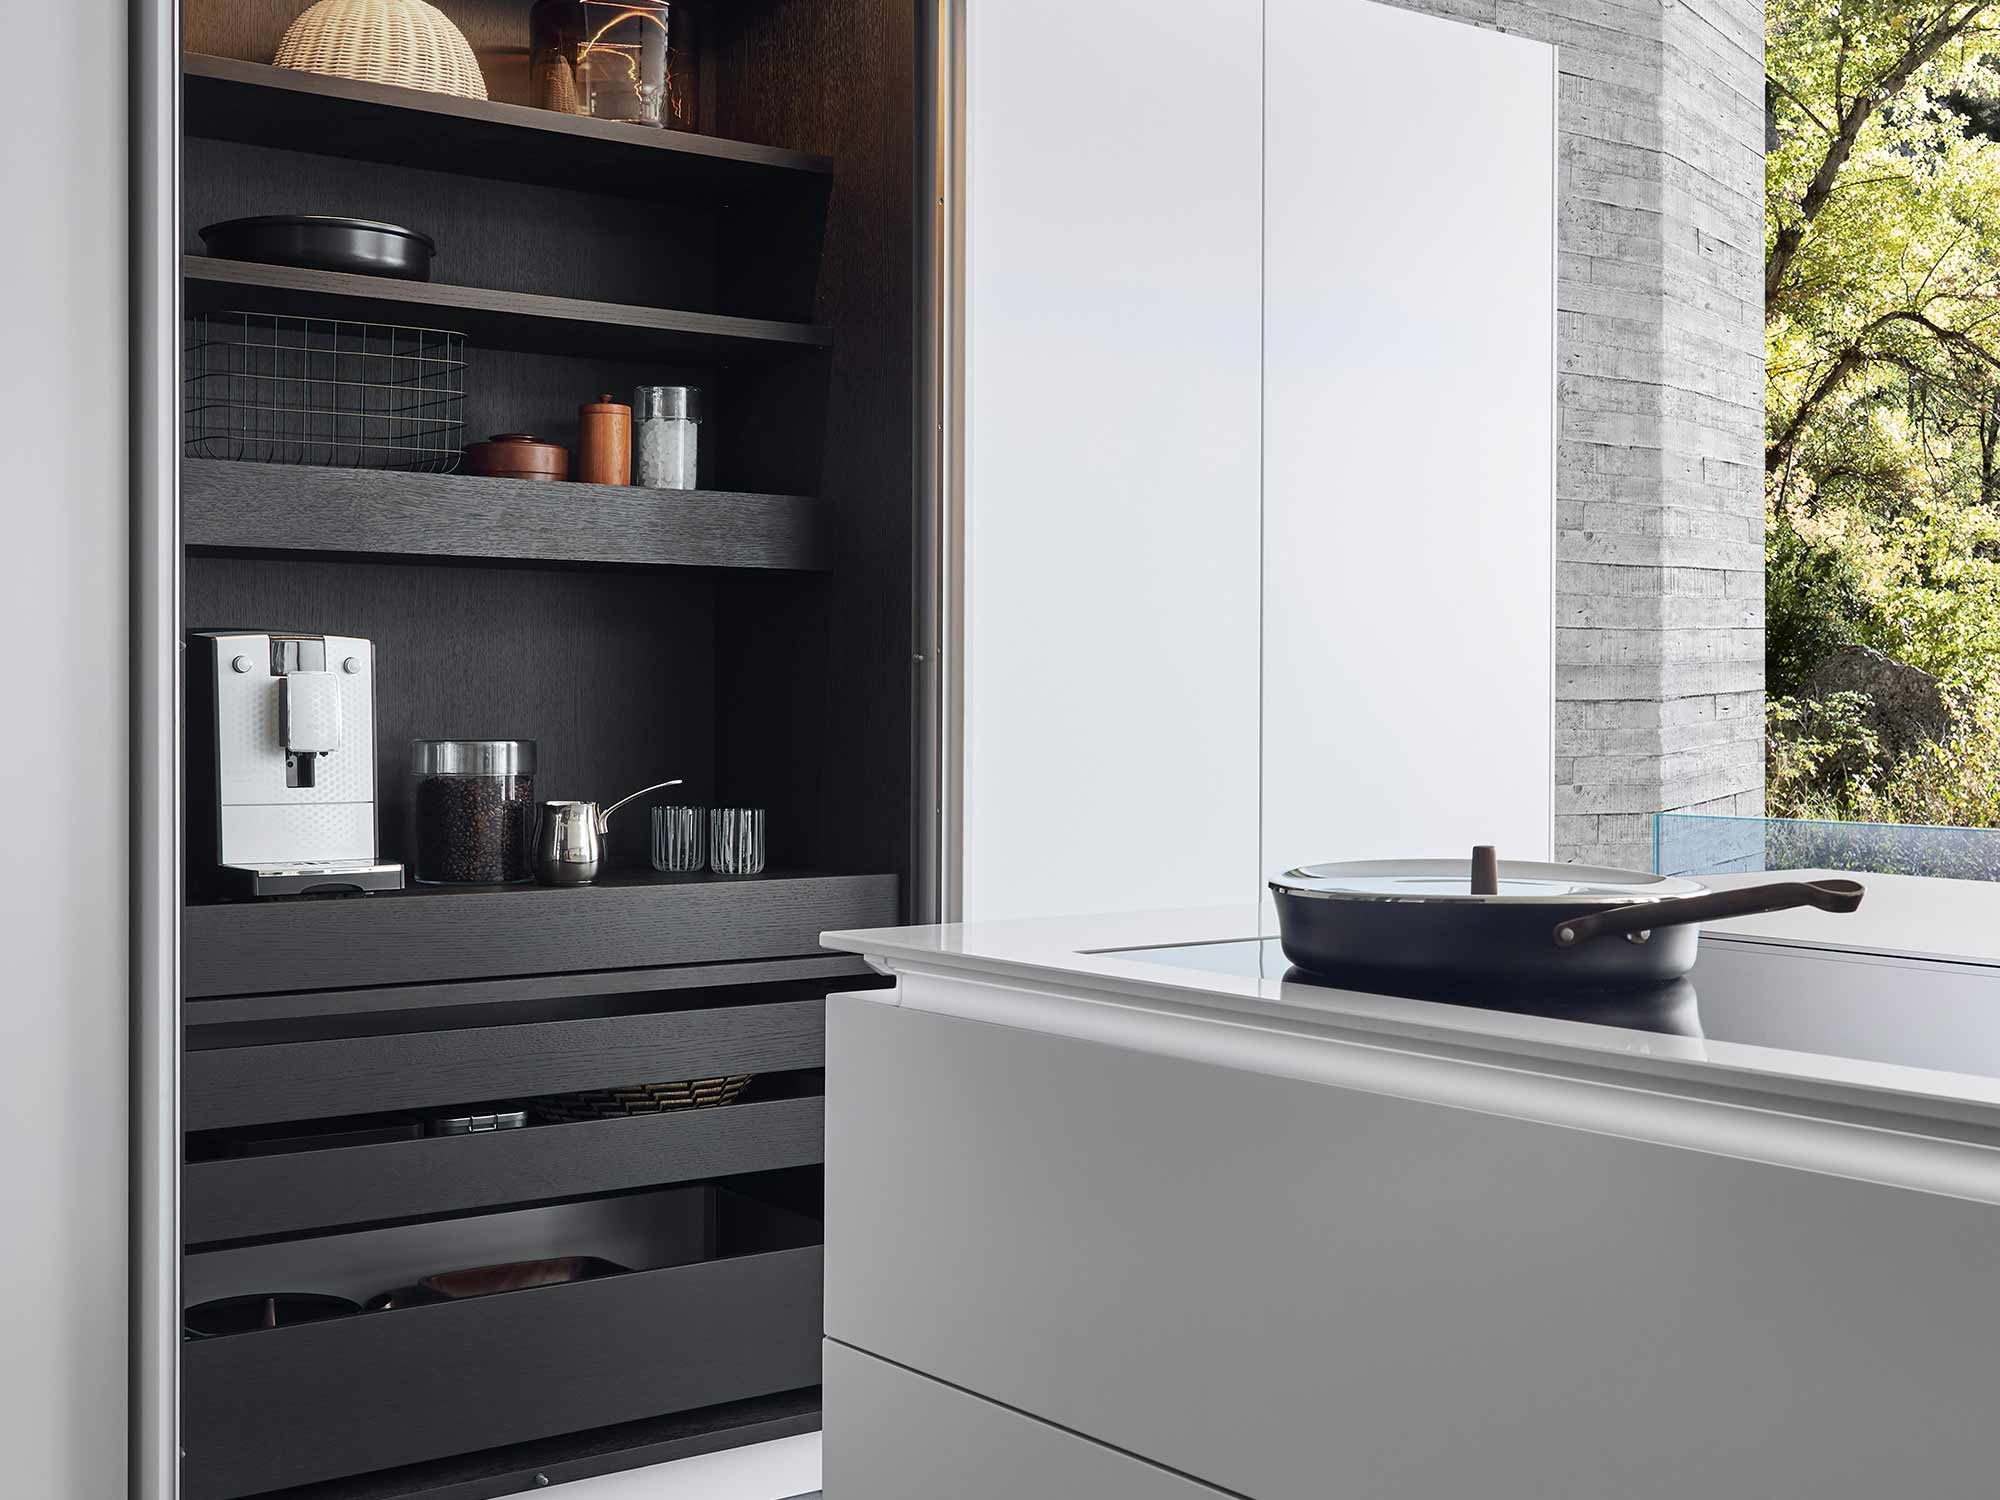 Designer kitchen in black and white by Hubble